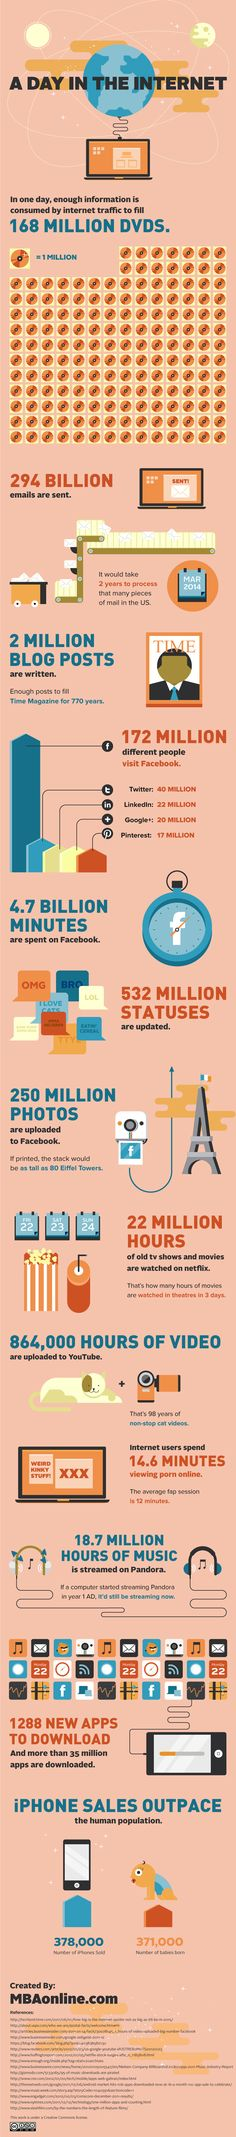 One Day in the Internet! great #infographic